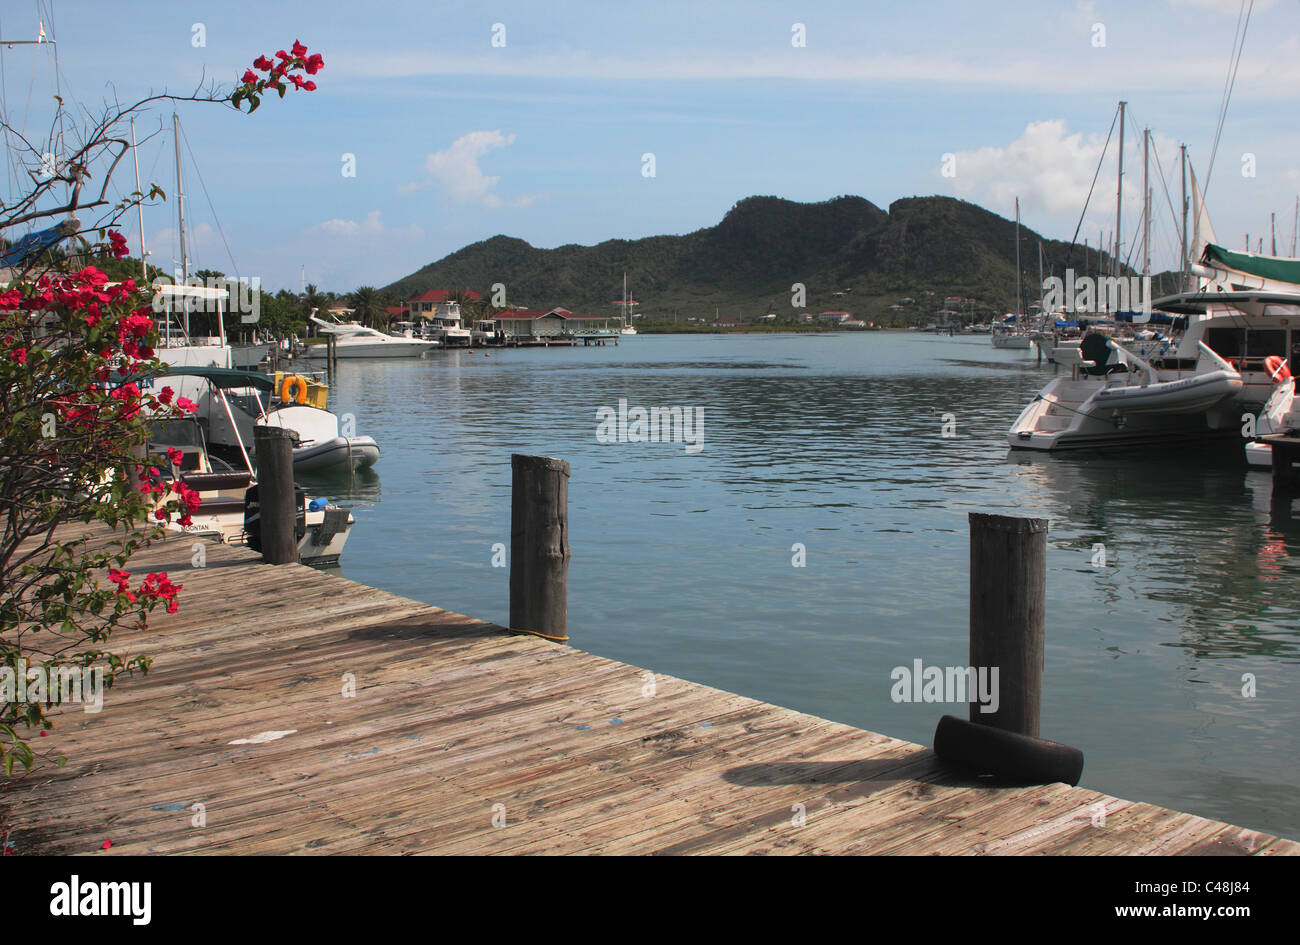 Wooden Jetty, Boats and Hill View, Jolly Bay, Antigua, West Indies - Stock Image